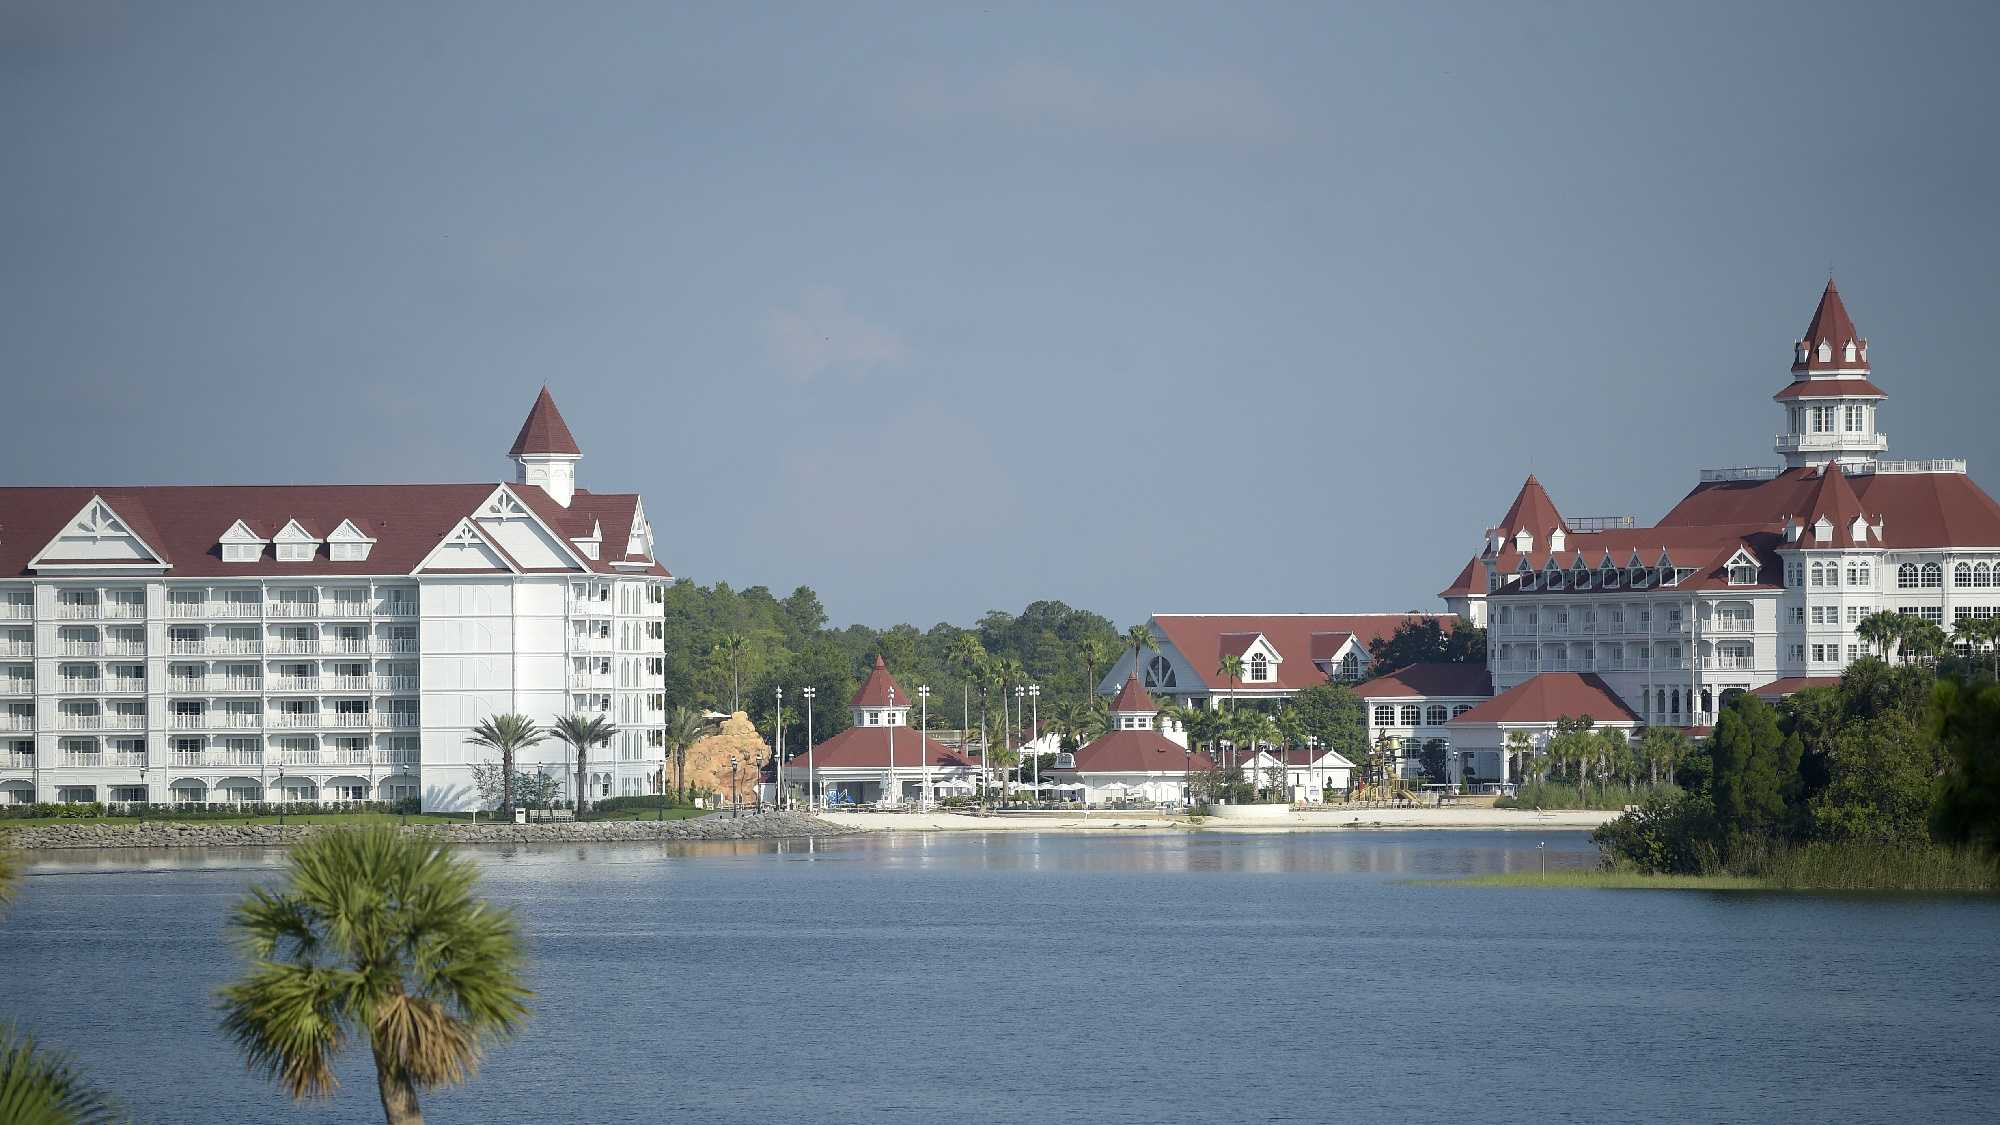 Law enforcement officers search the Seven Seas Lagoon outside Disney's Grand Floridian Resort & Spa Wednesday, June 15, 2016, in Lake Buena Vista, Fla., after a two-year-old toddler was dragged into the lake by an alligator.